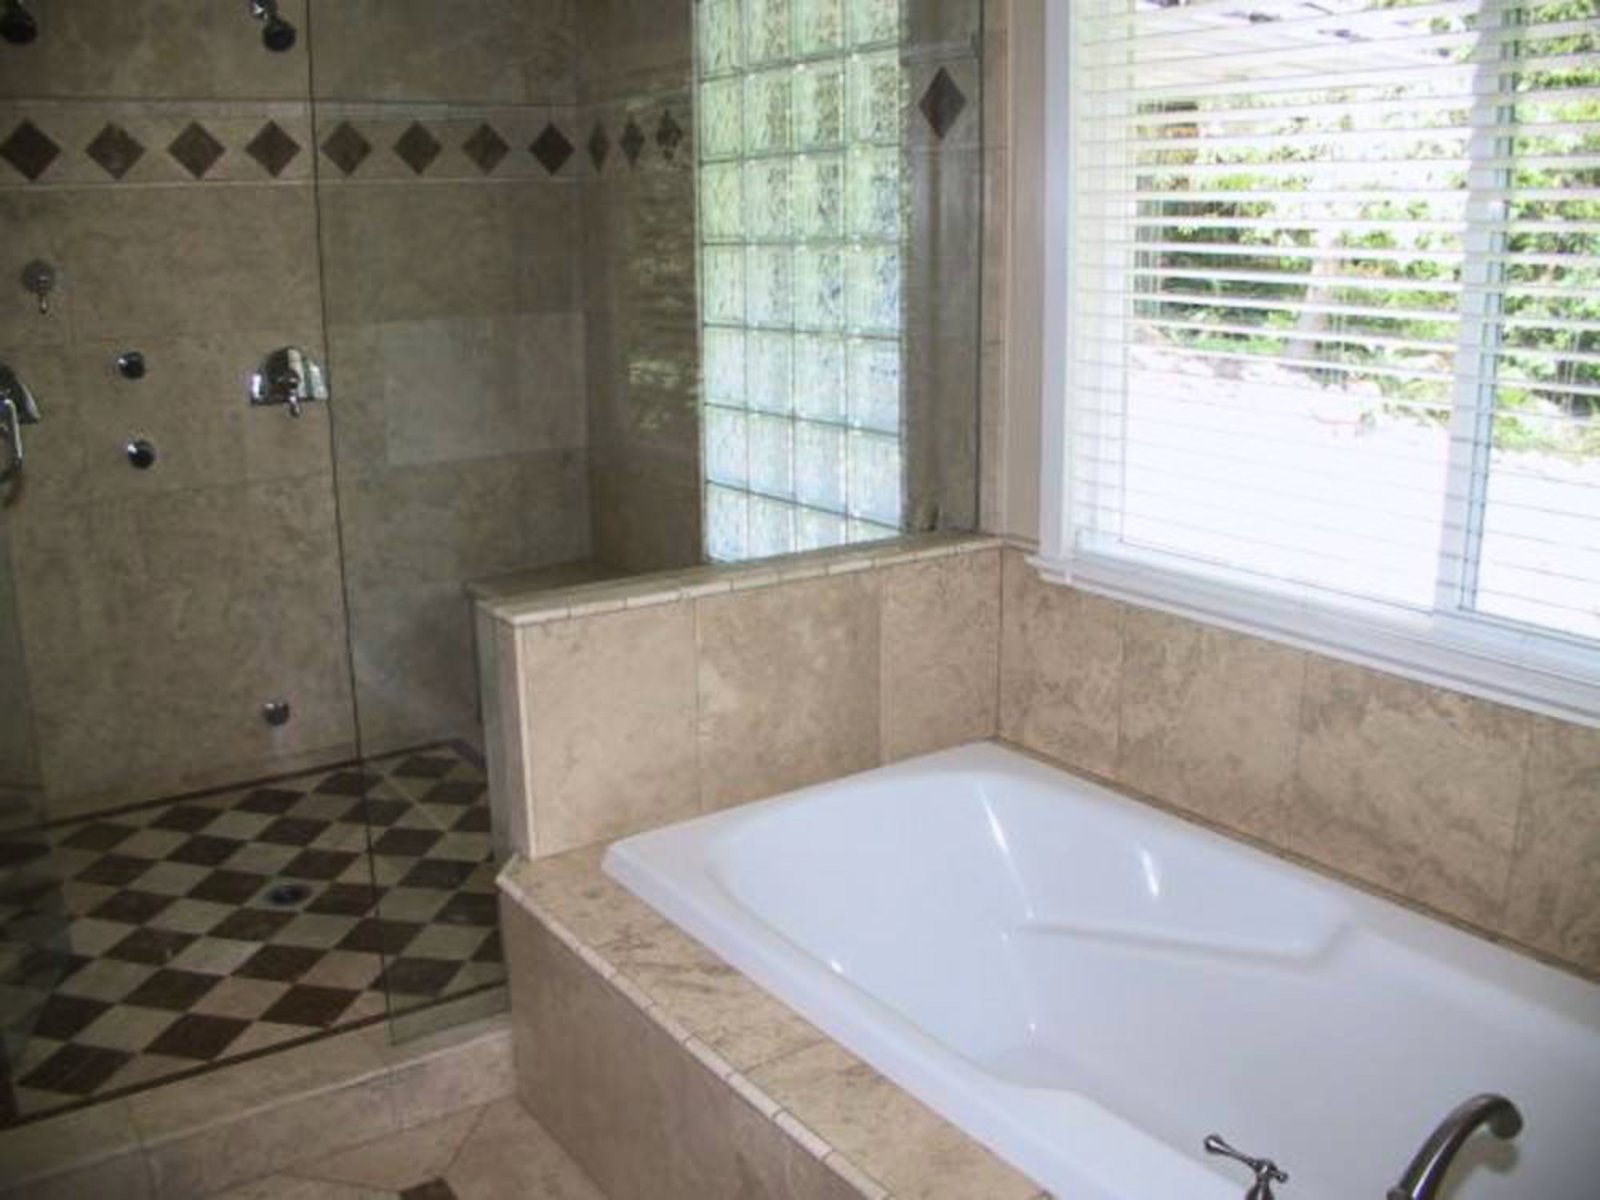 Oversized soaker tub and steam/shower